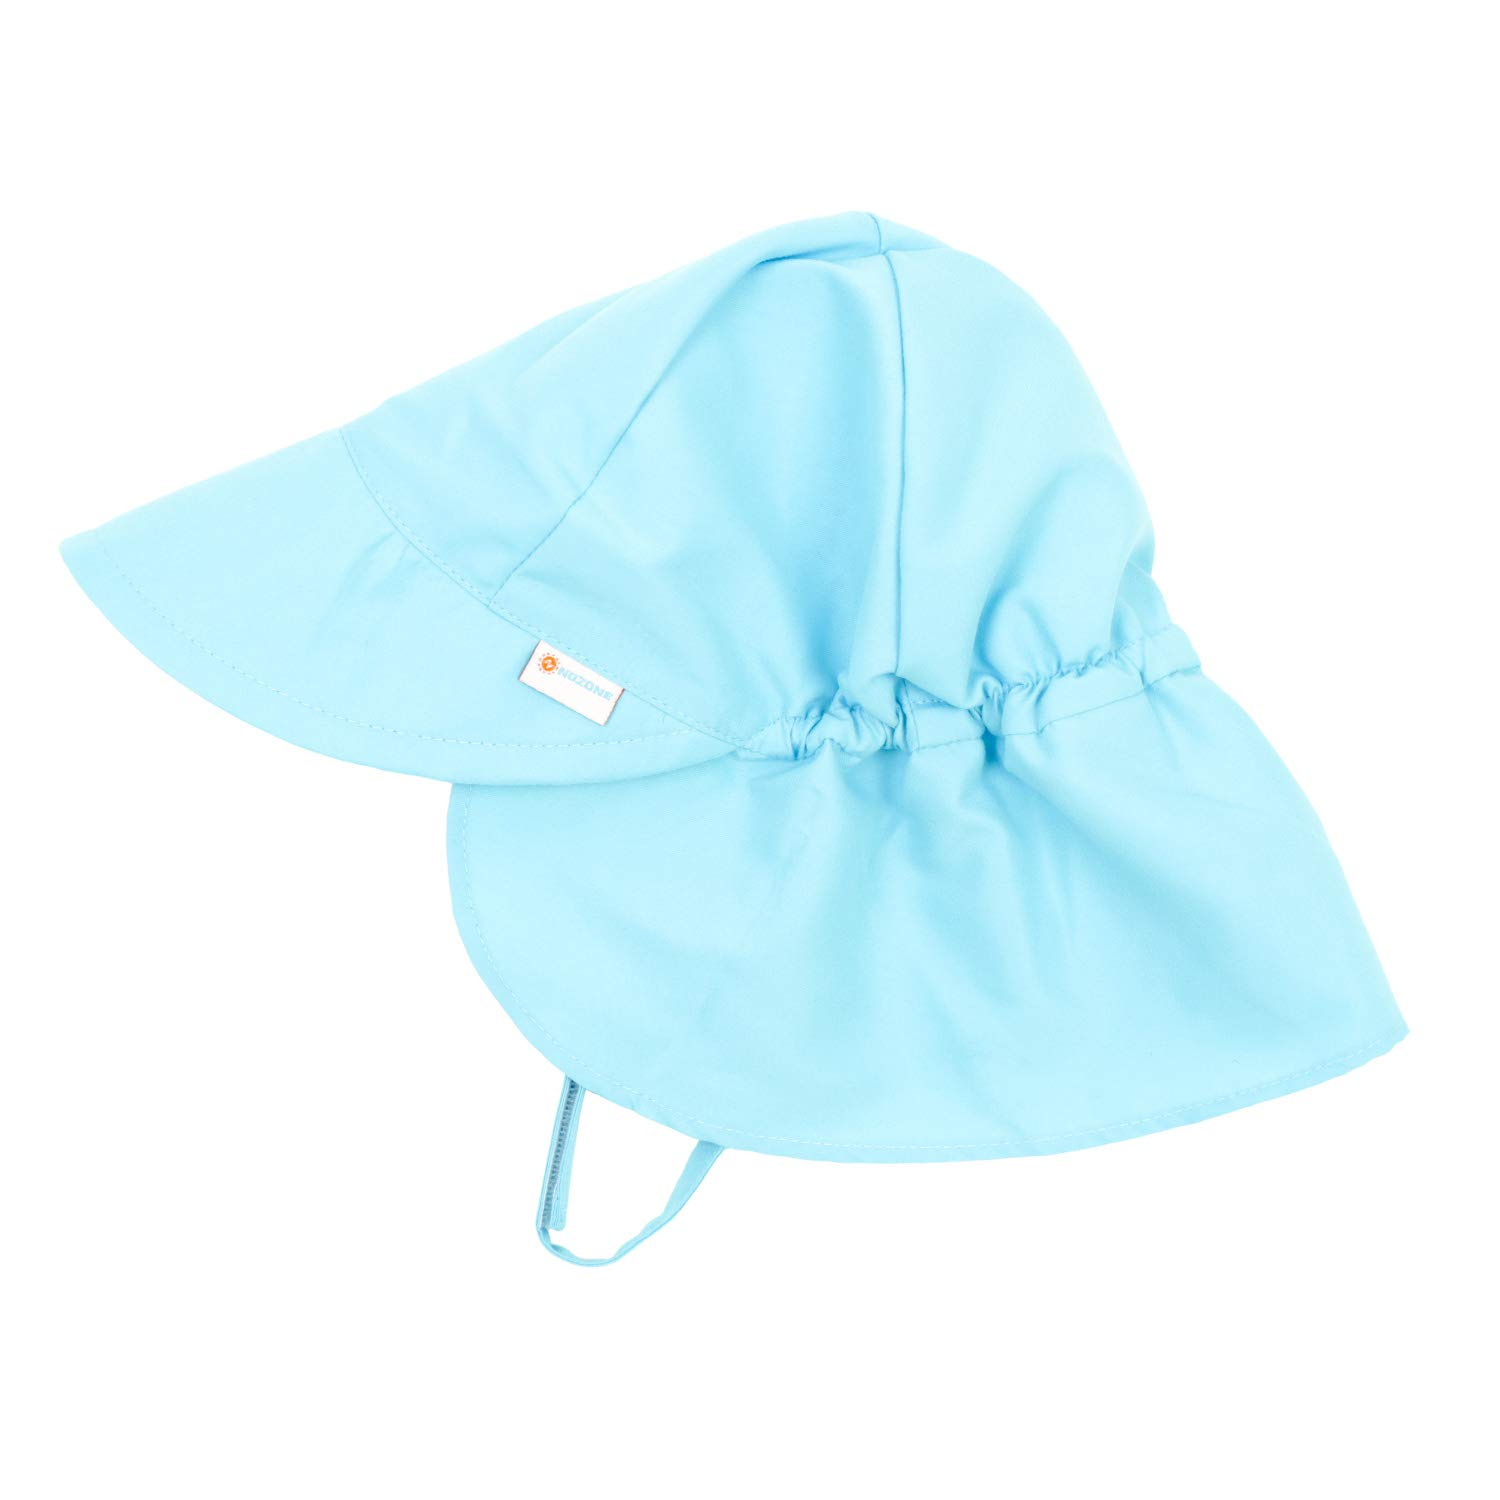 Nozone Better Baby Flap Sun Hat - Infant Toddler Sun Protection 446